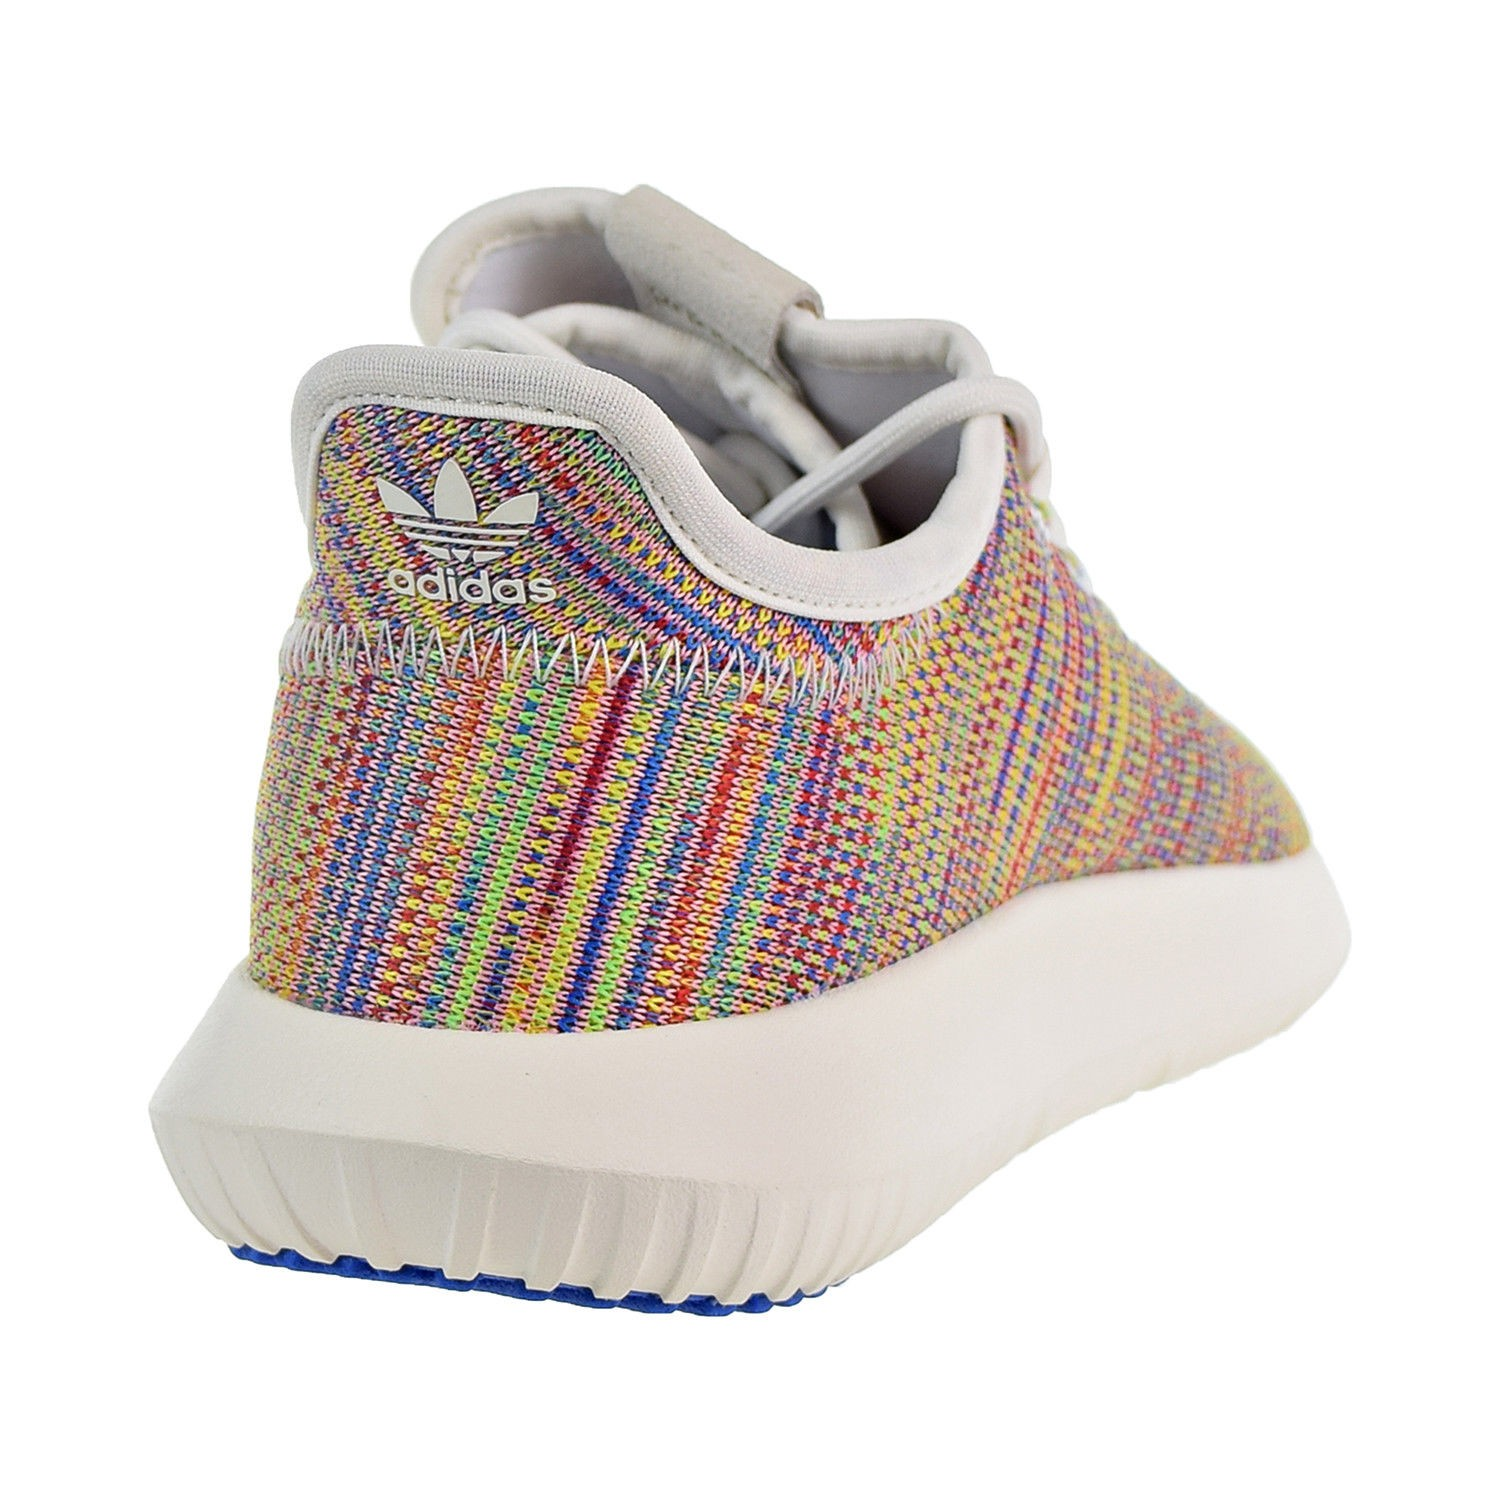 Adidas Tubular Shadow Multi Color Casual Sneakers DB3056